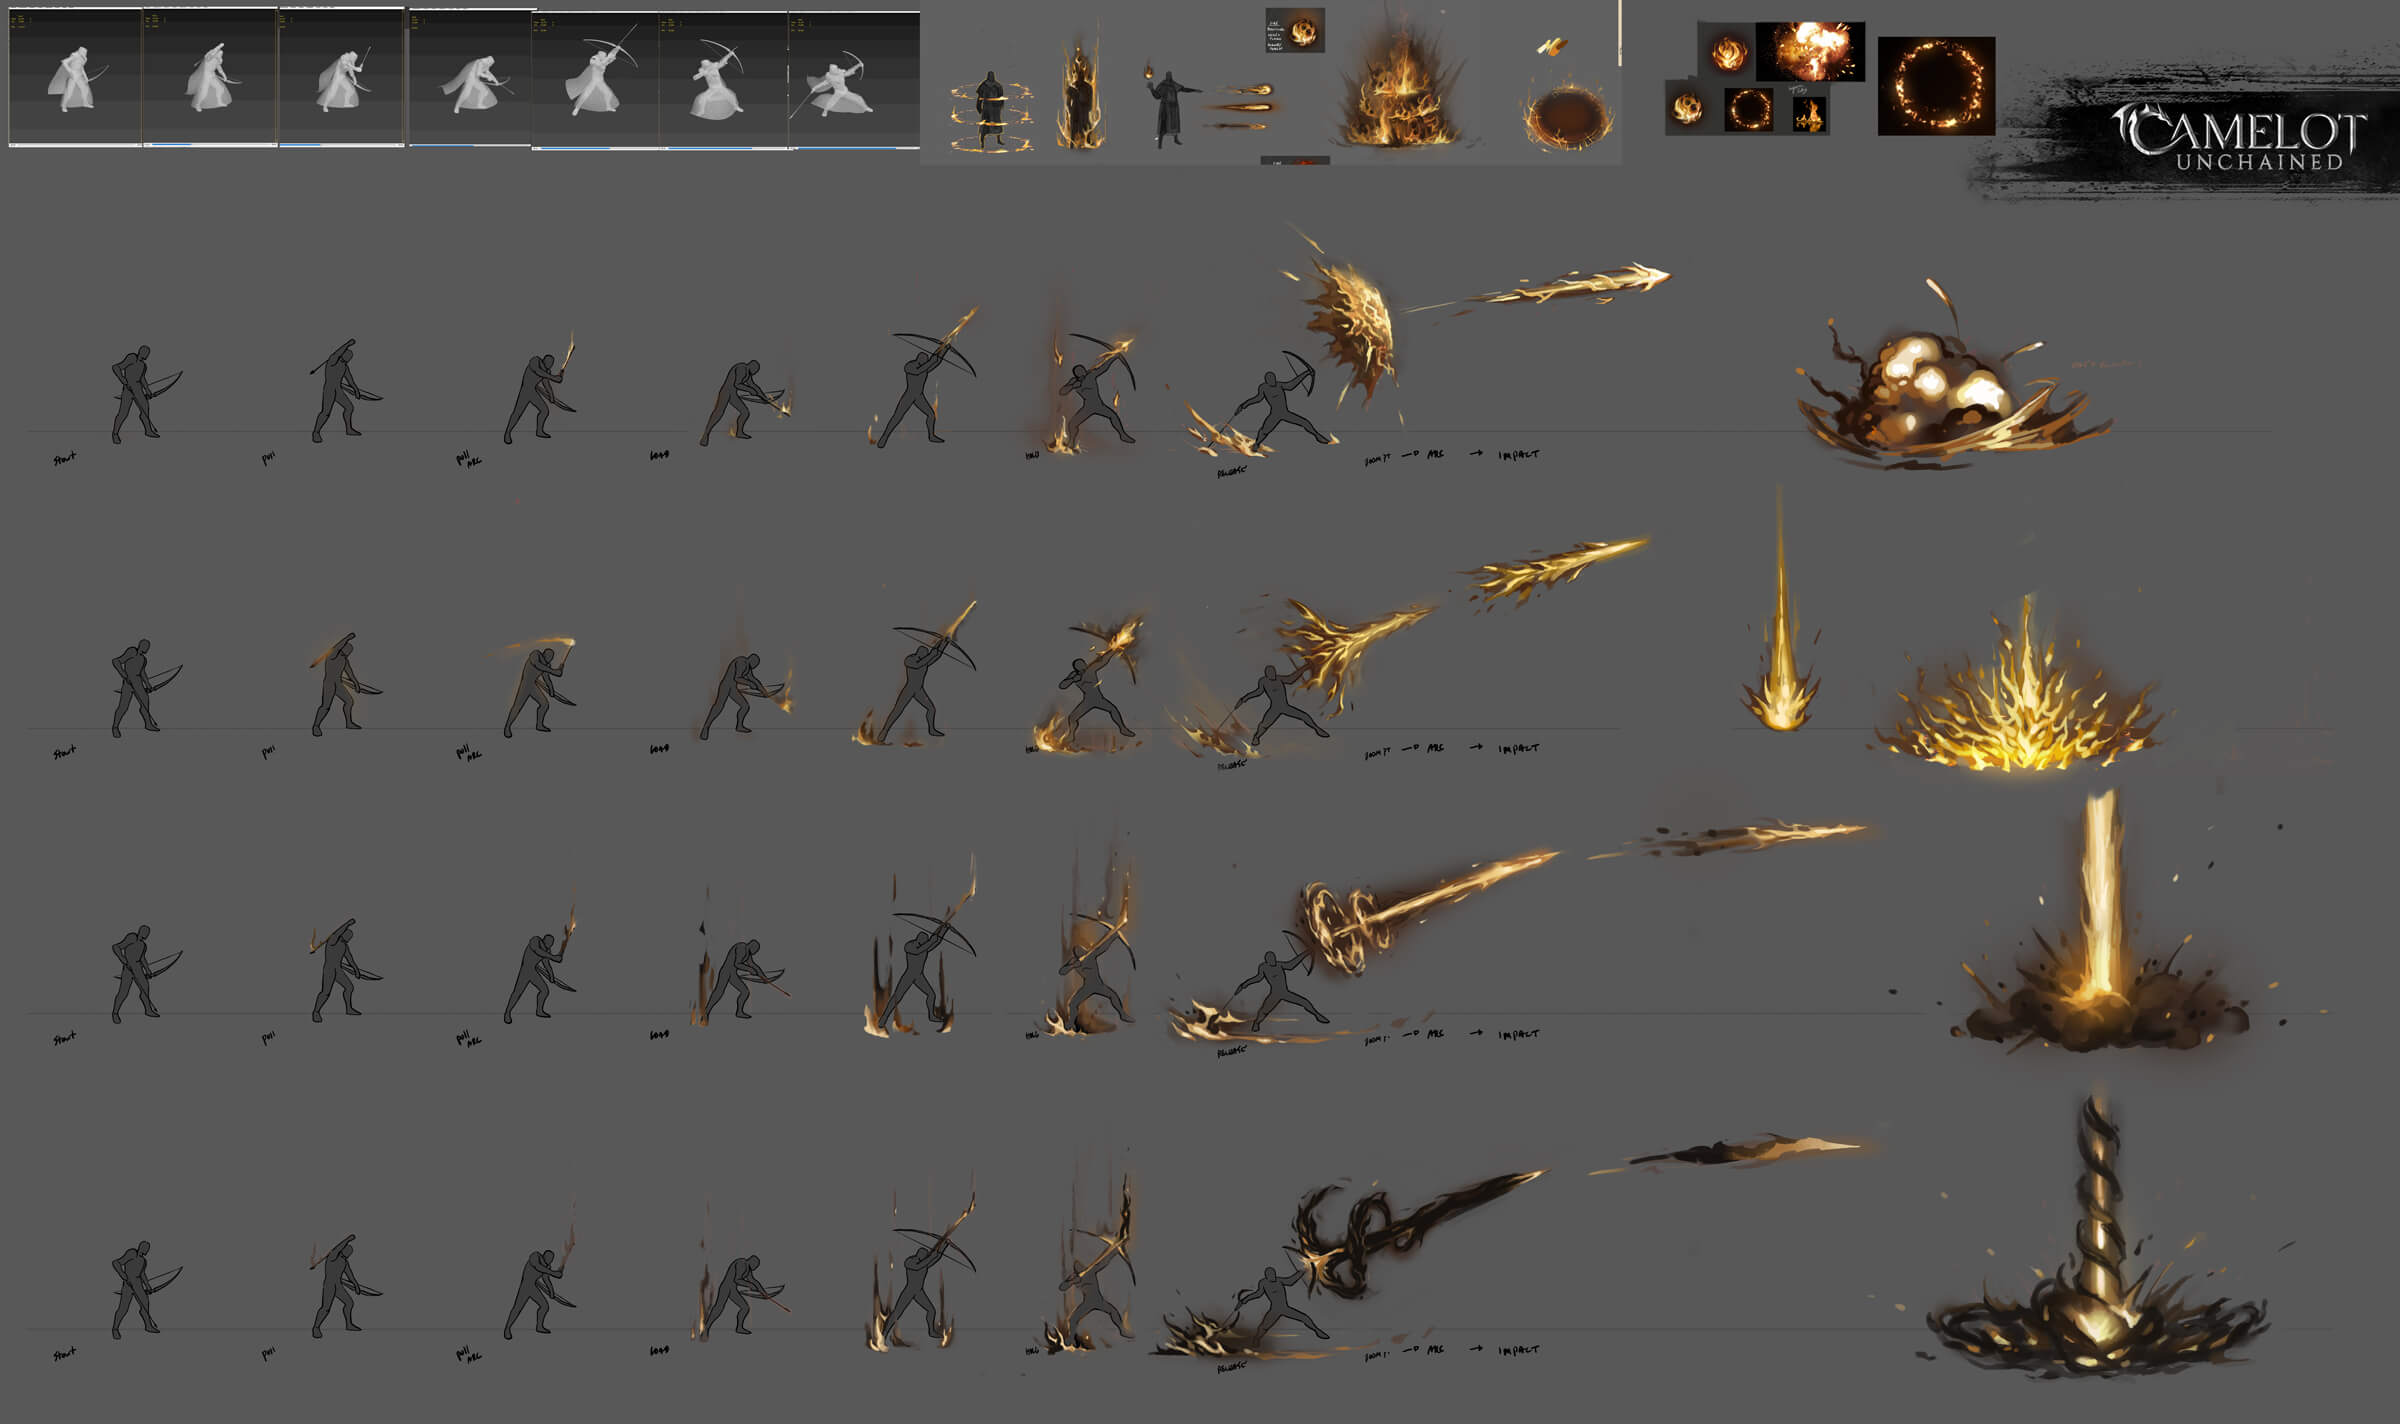 Camelot-Unchained-Skills-Animation-Concept-Art-1